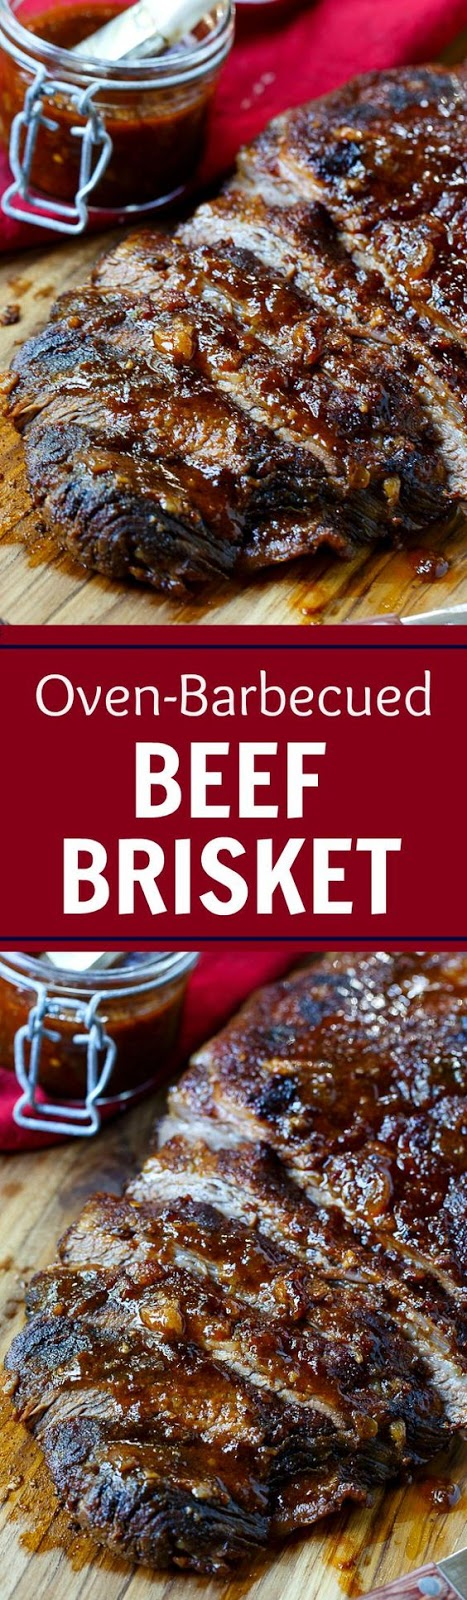 Spicy Southern Kitchen Oven Barbecued Beef Brisket Recipe